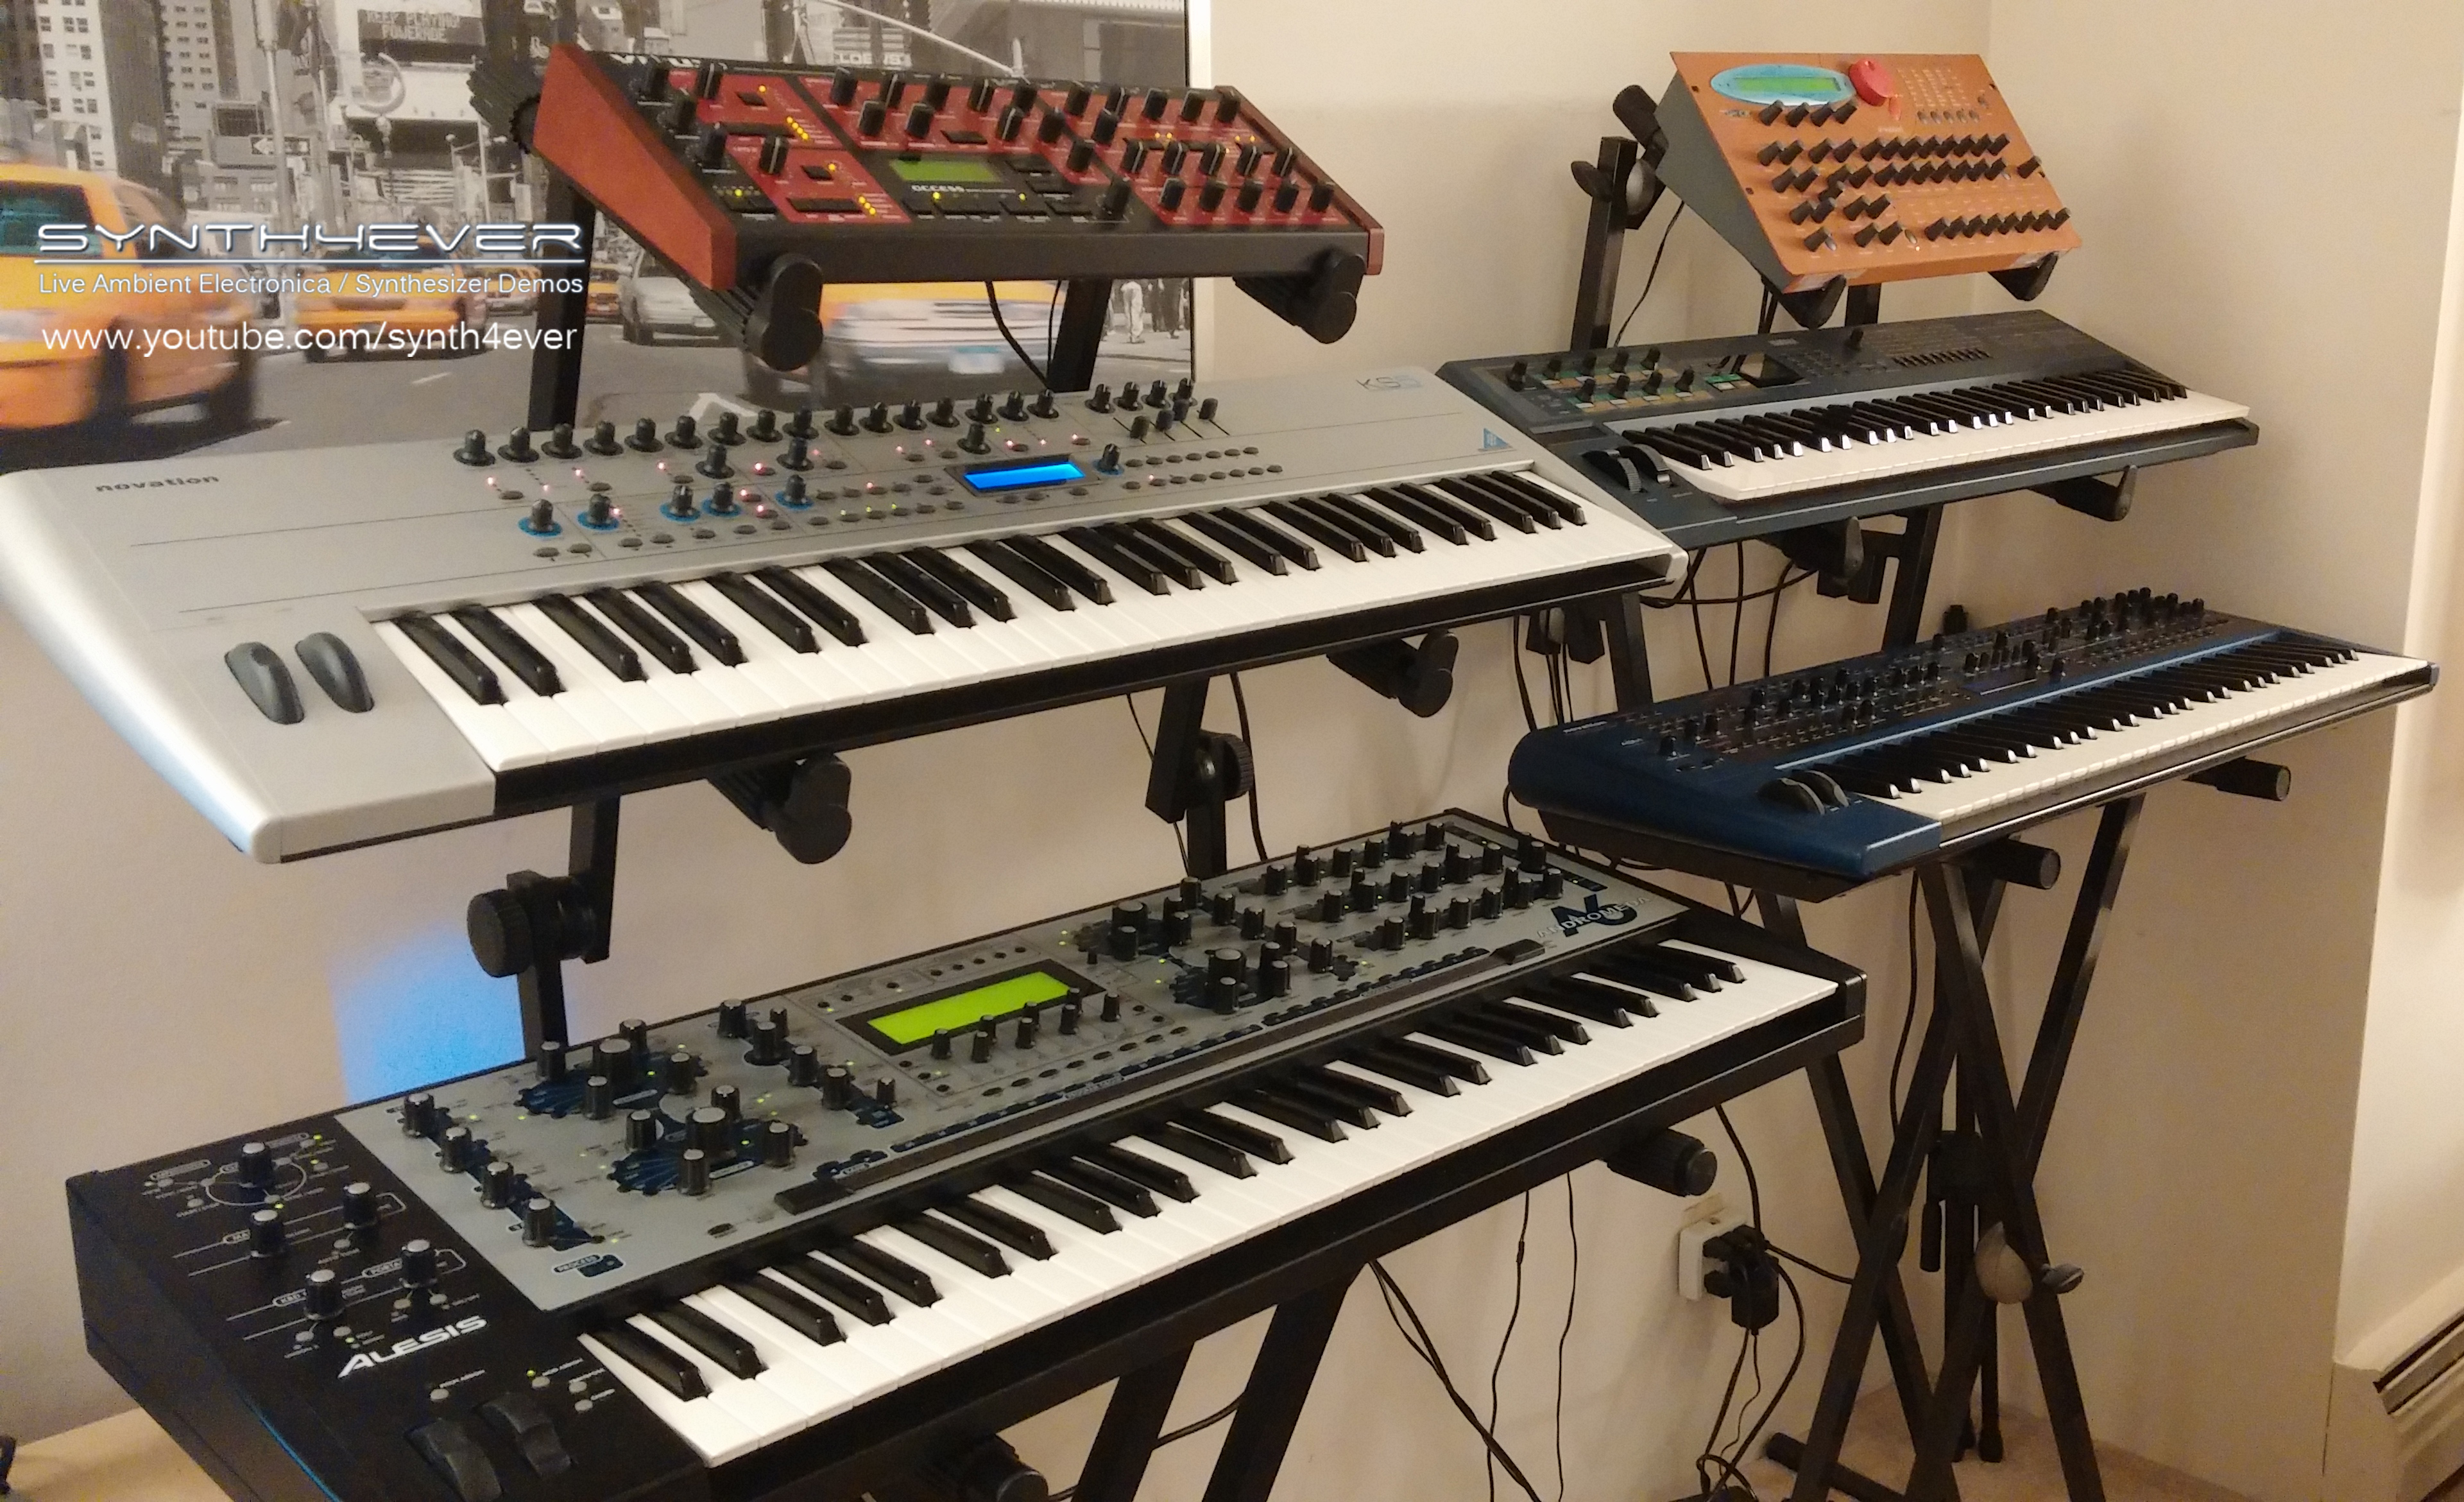 my synth studio   synth4ever